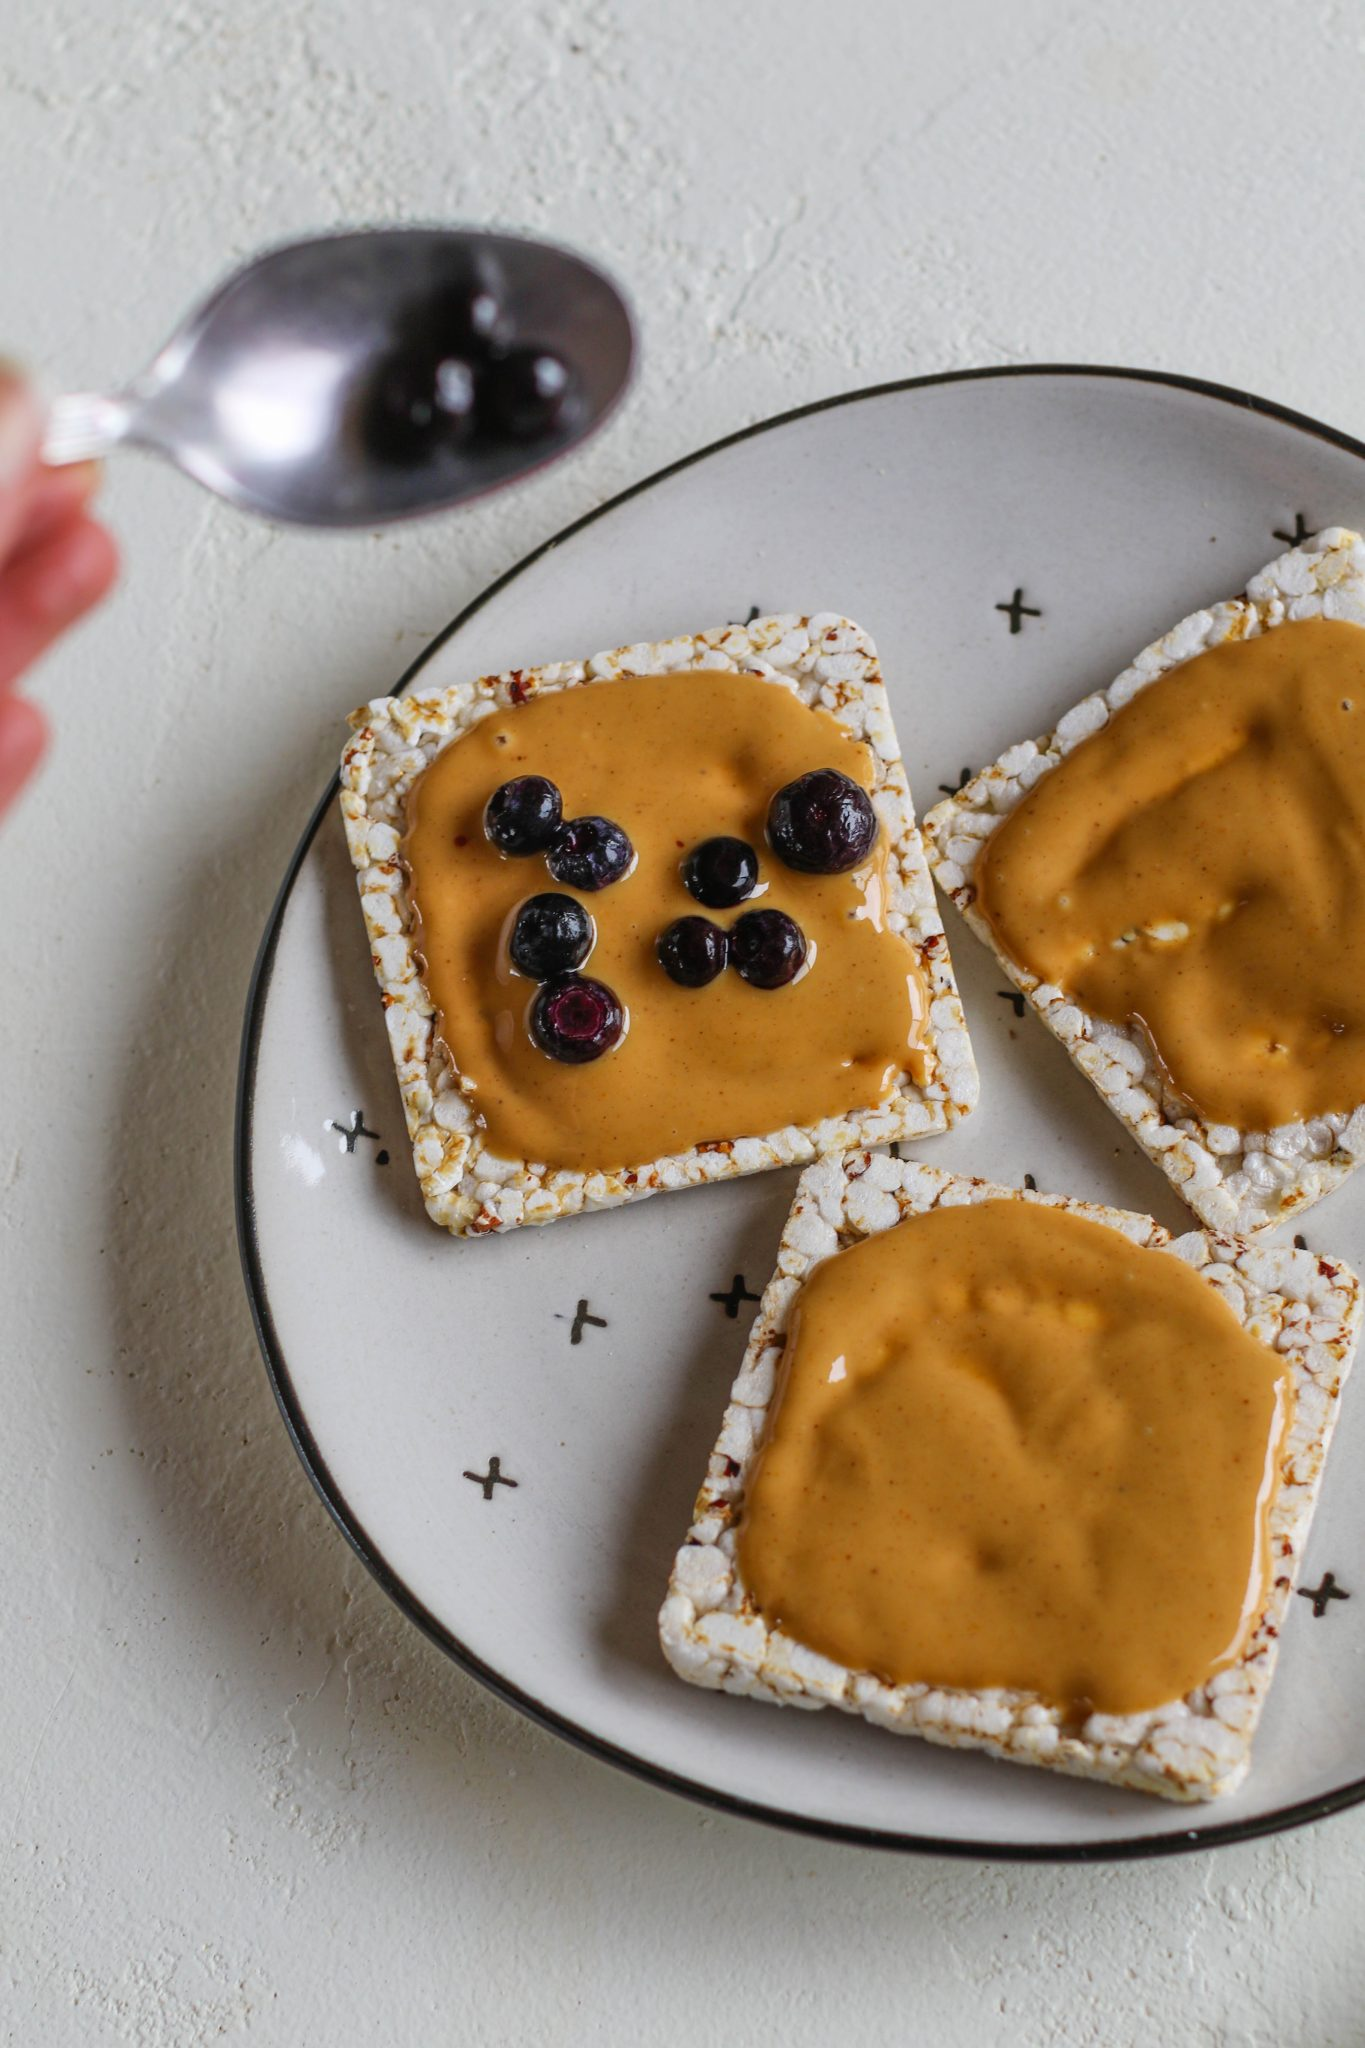 rice cakes with peanut butter and blueberries